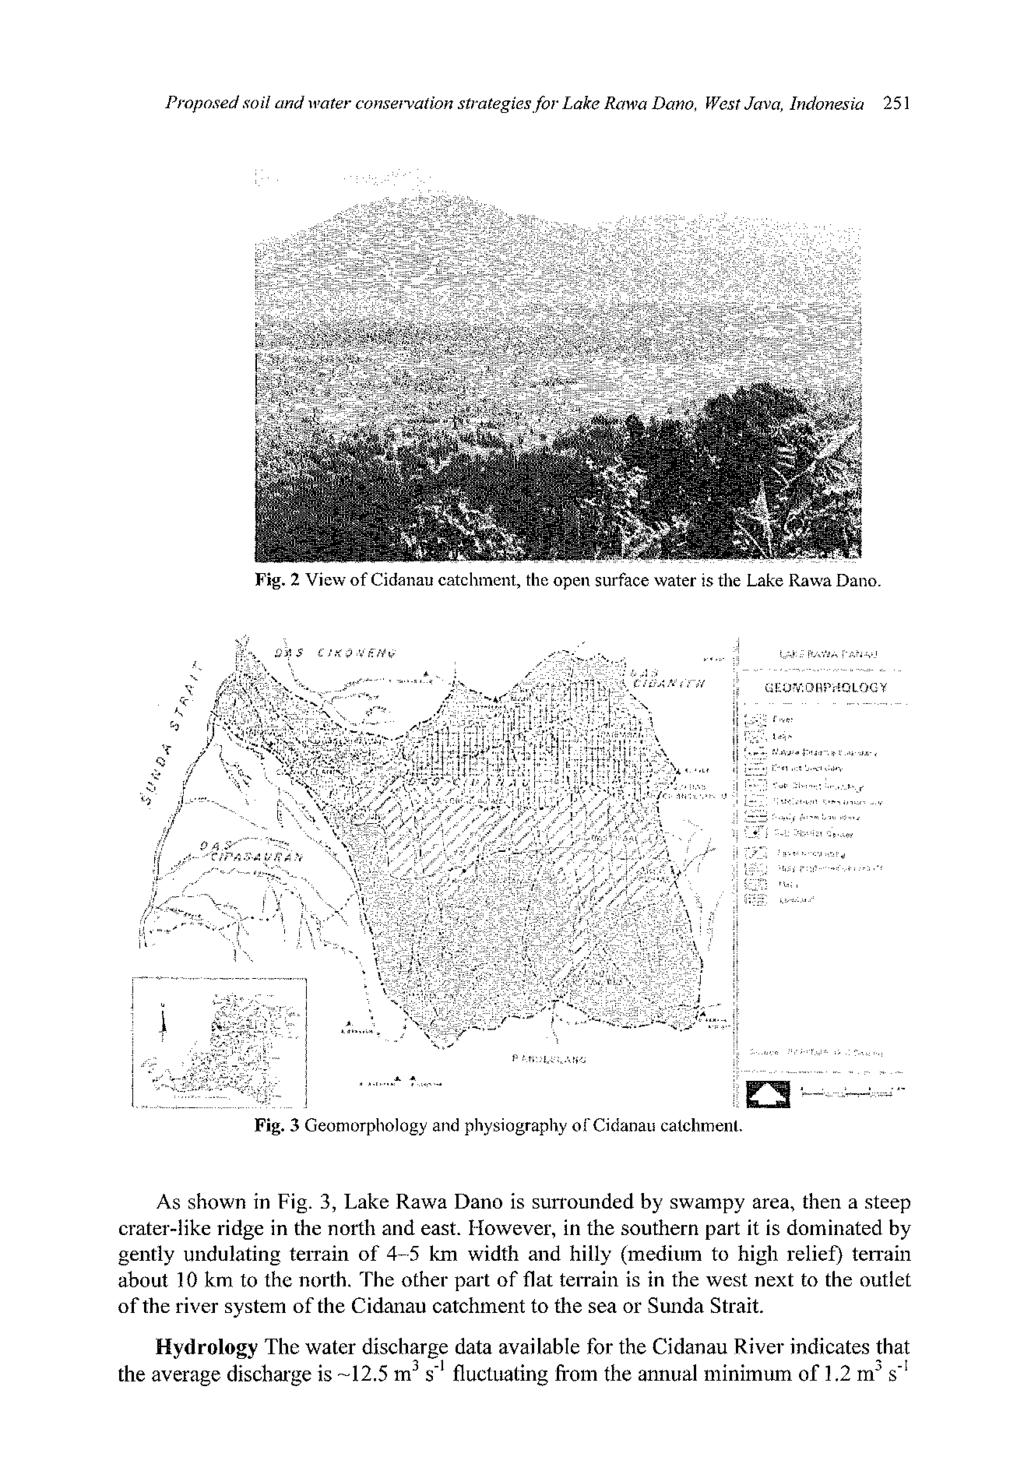 Proposed soil and water conservation strategies for Lake Rawa Dano, West Java, Indonesia 251 Fig. 2 View of Cidanau catchment, the open surface water is the Lake Rawa Dano. Fig. 3 Geomorphology and physiography of Cidanau catchment.